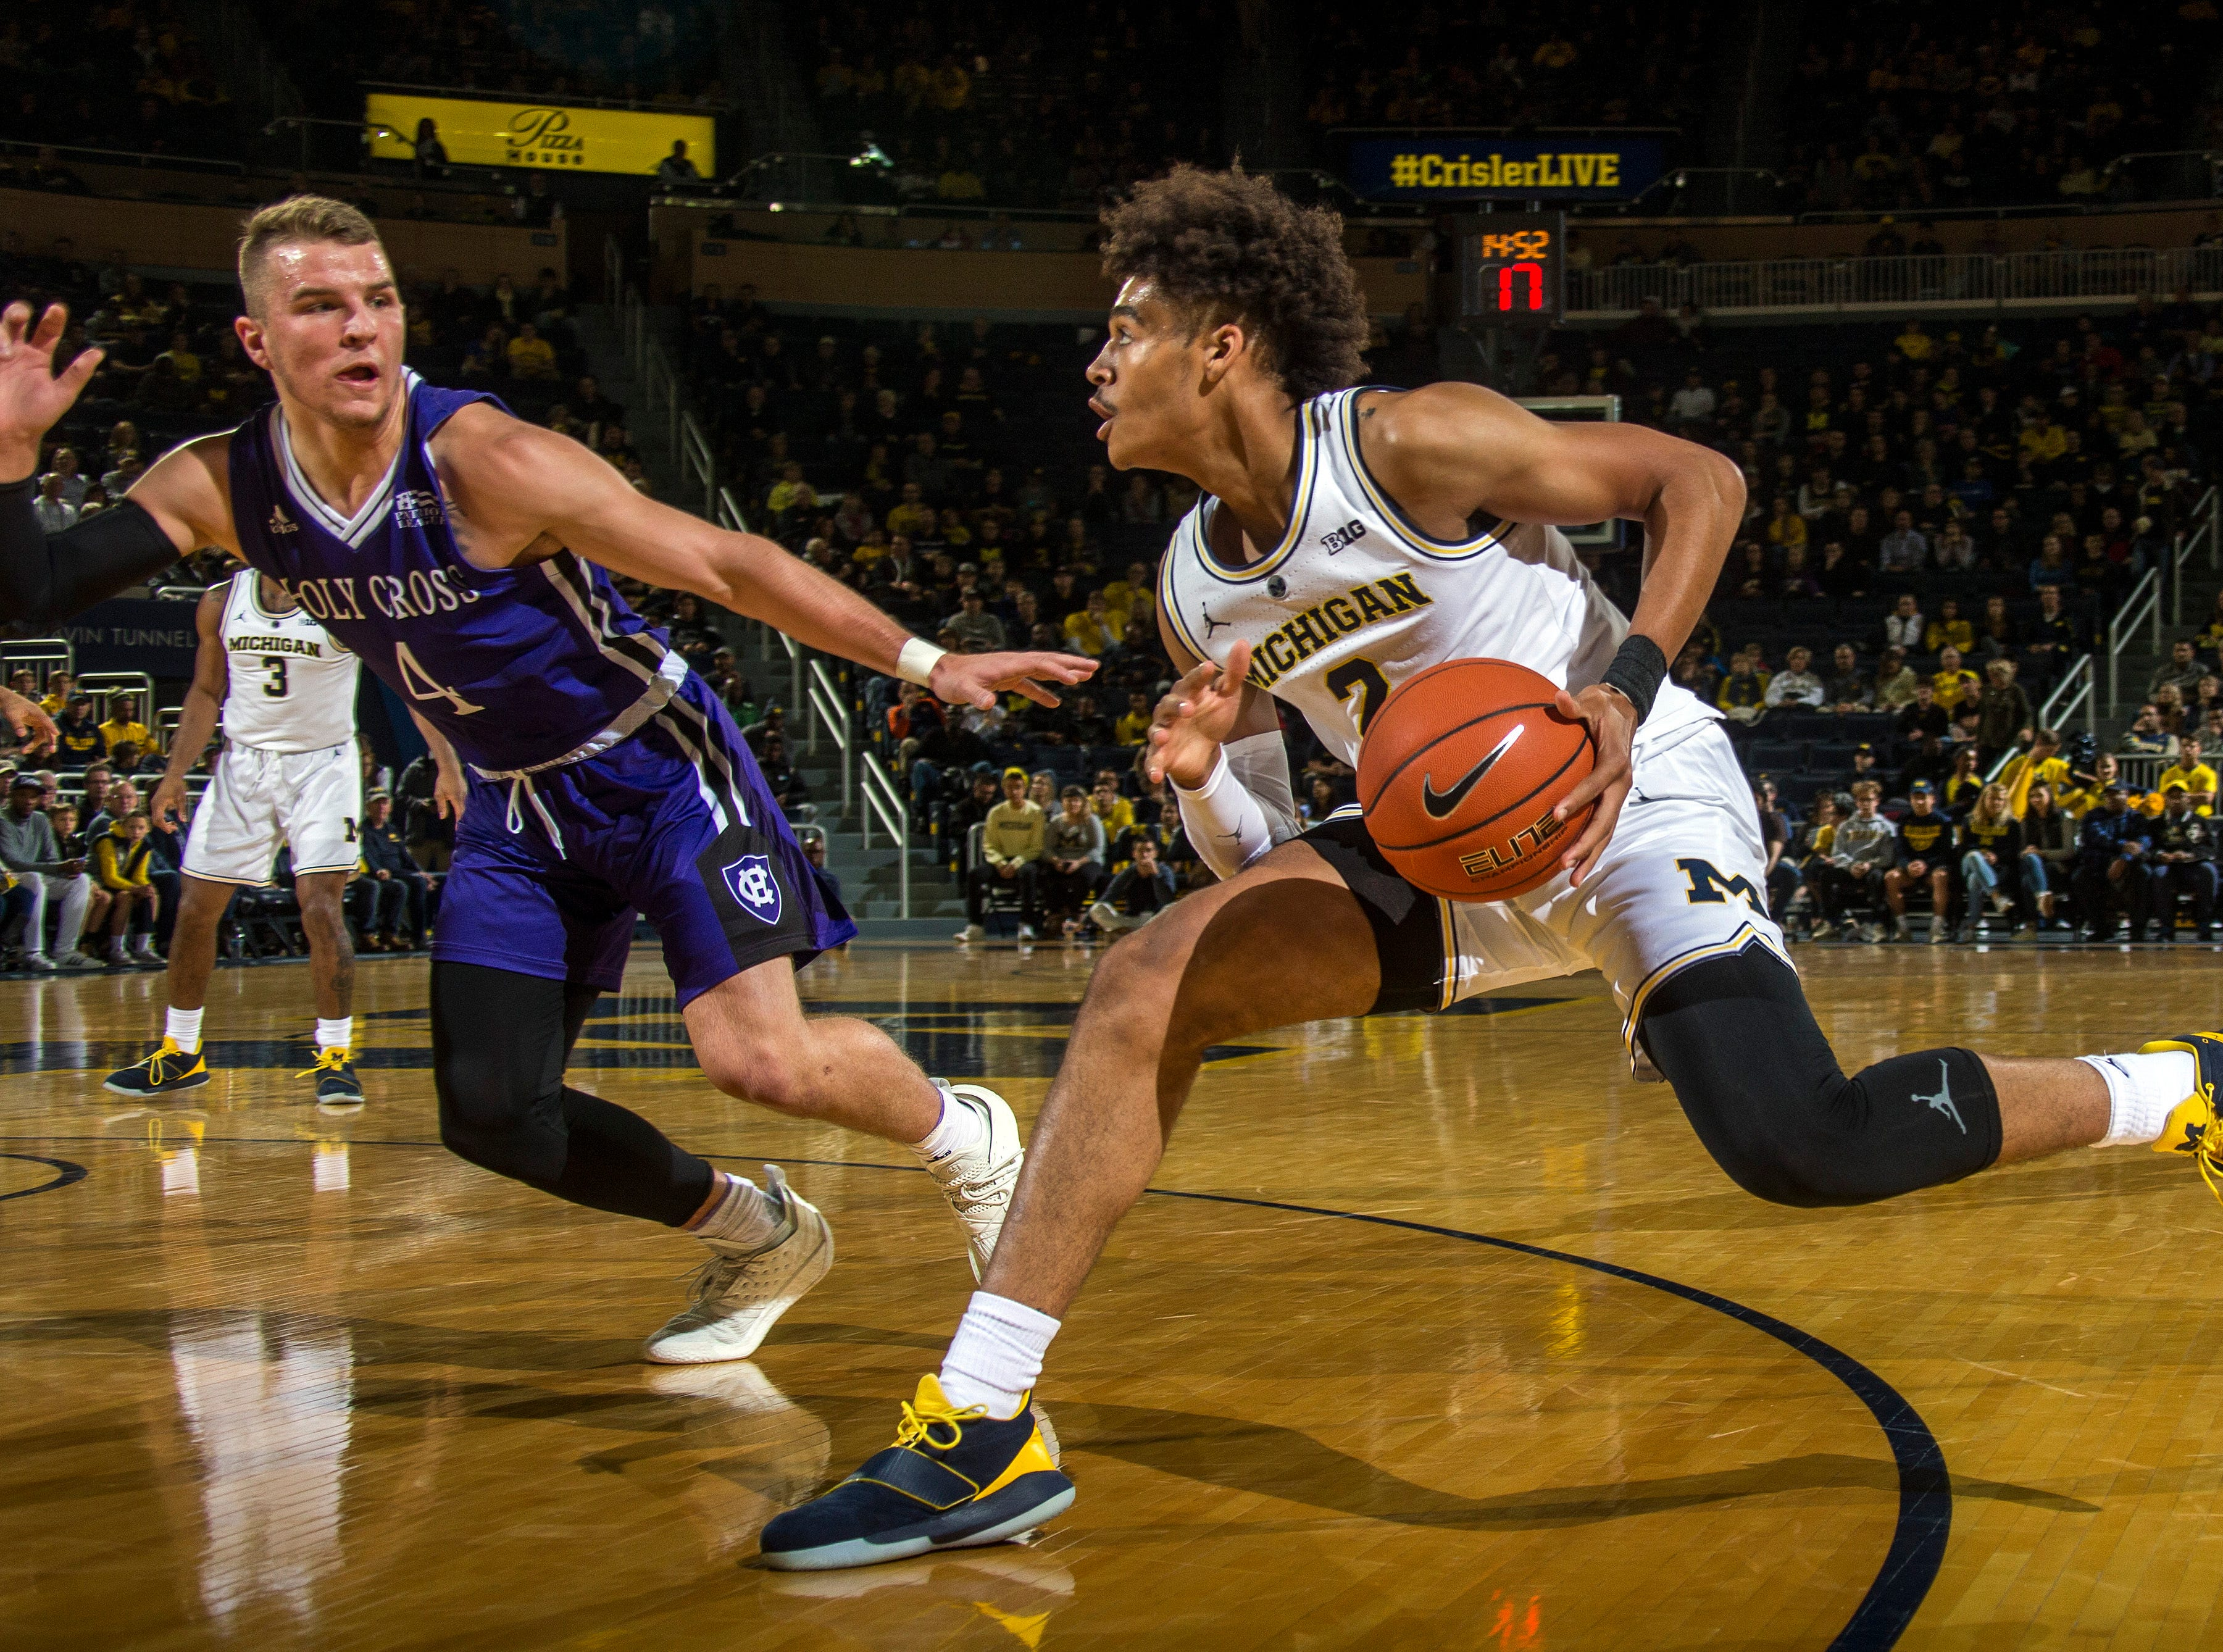 Holy Cross guard Austin Butler (4) defends Michigan guard Jordan Poole (2) in the first half of an NCAA college basketball game at Crisler Center in Ann Arbor, Mich., Saturday, Nov. 10, 2018. Michigan won 56-37. (AP Photo/Tony Ding)